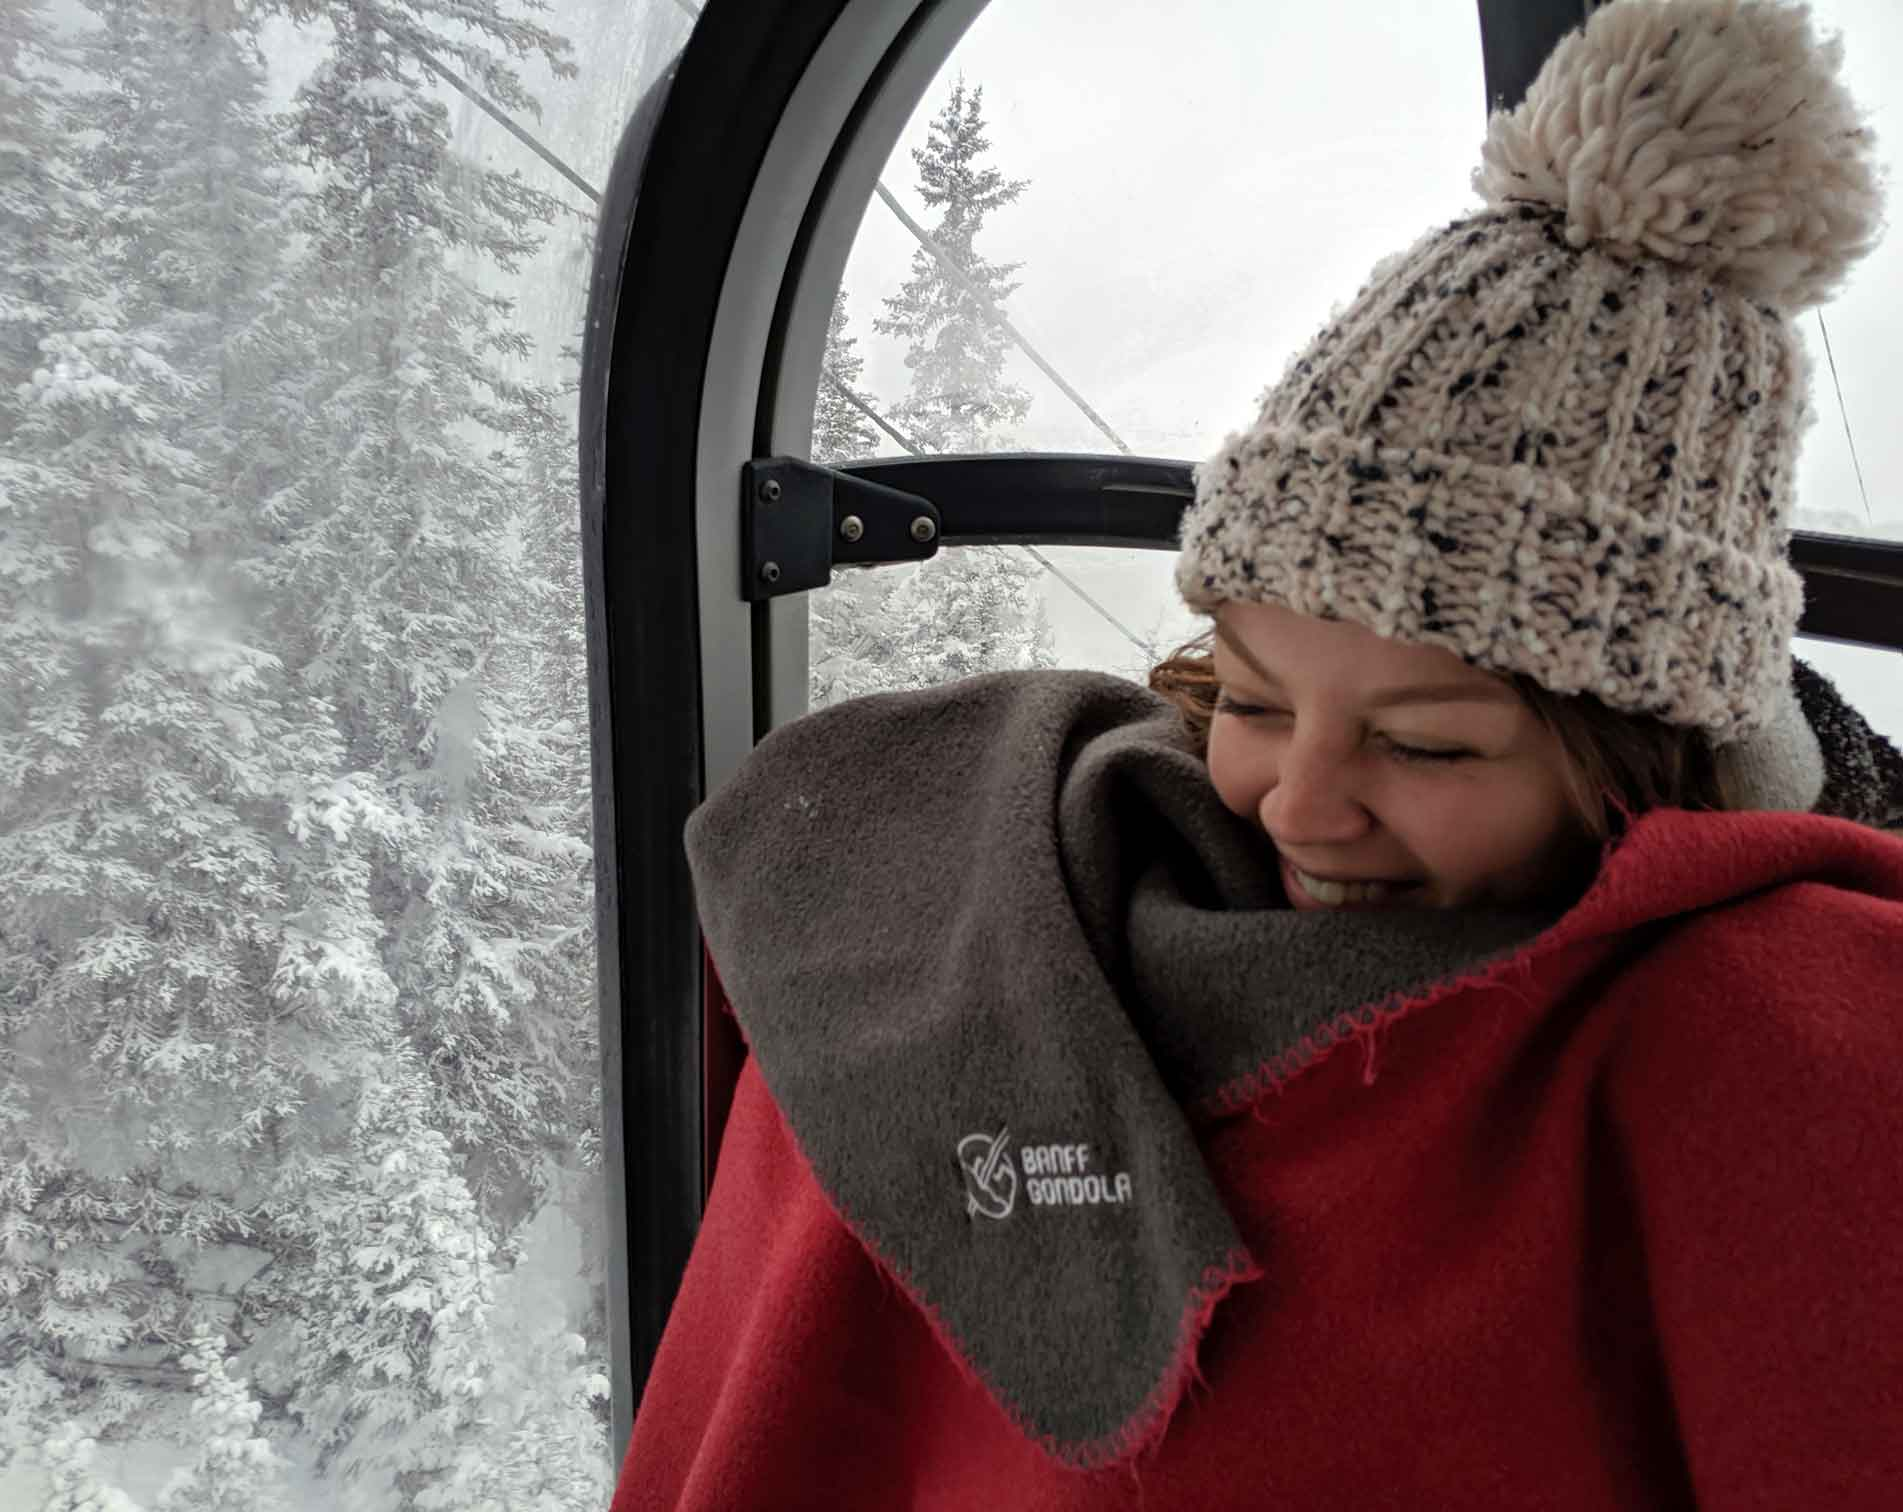 I'm sitting on the Banff Gondola, bundled in a Pursuit blanket with snow covered trees behind me.